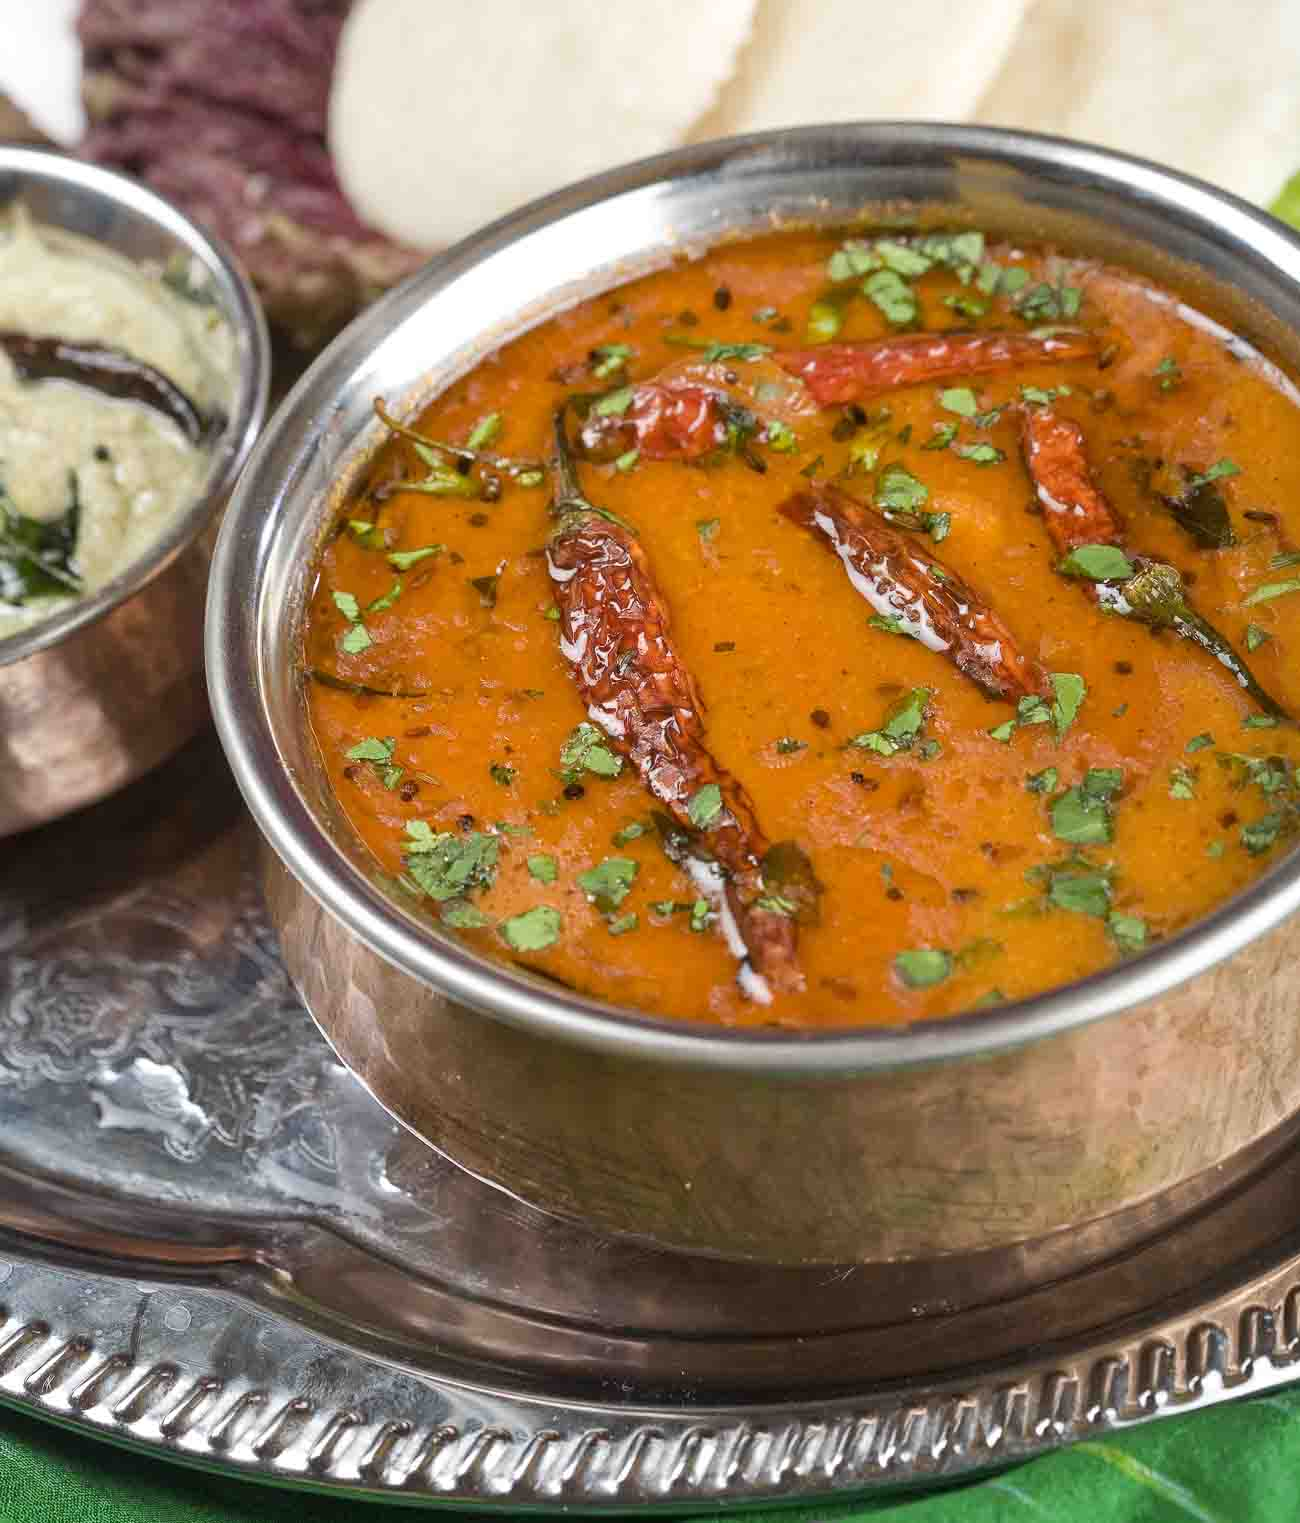 Kerala style varutharachu sambar recipe by archanas kitchen kerala style varutharachu sambar recipe lentils curry with tamarind and roasted coconut forumfinder Image collections